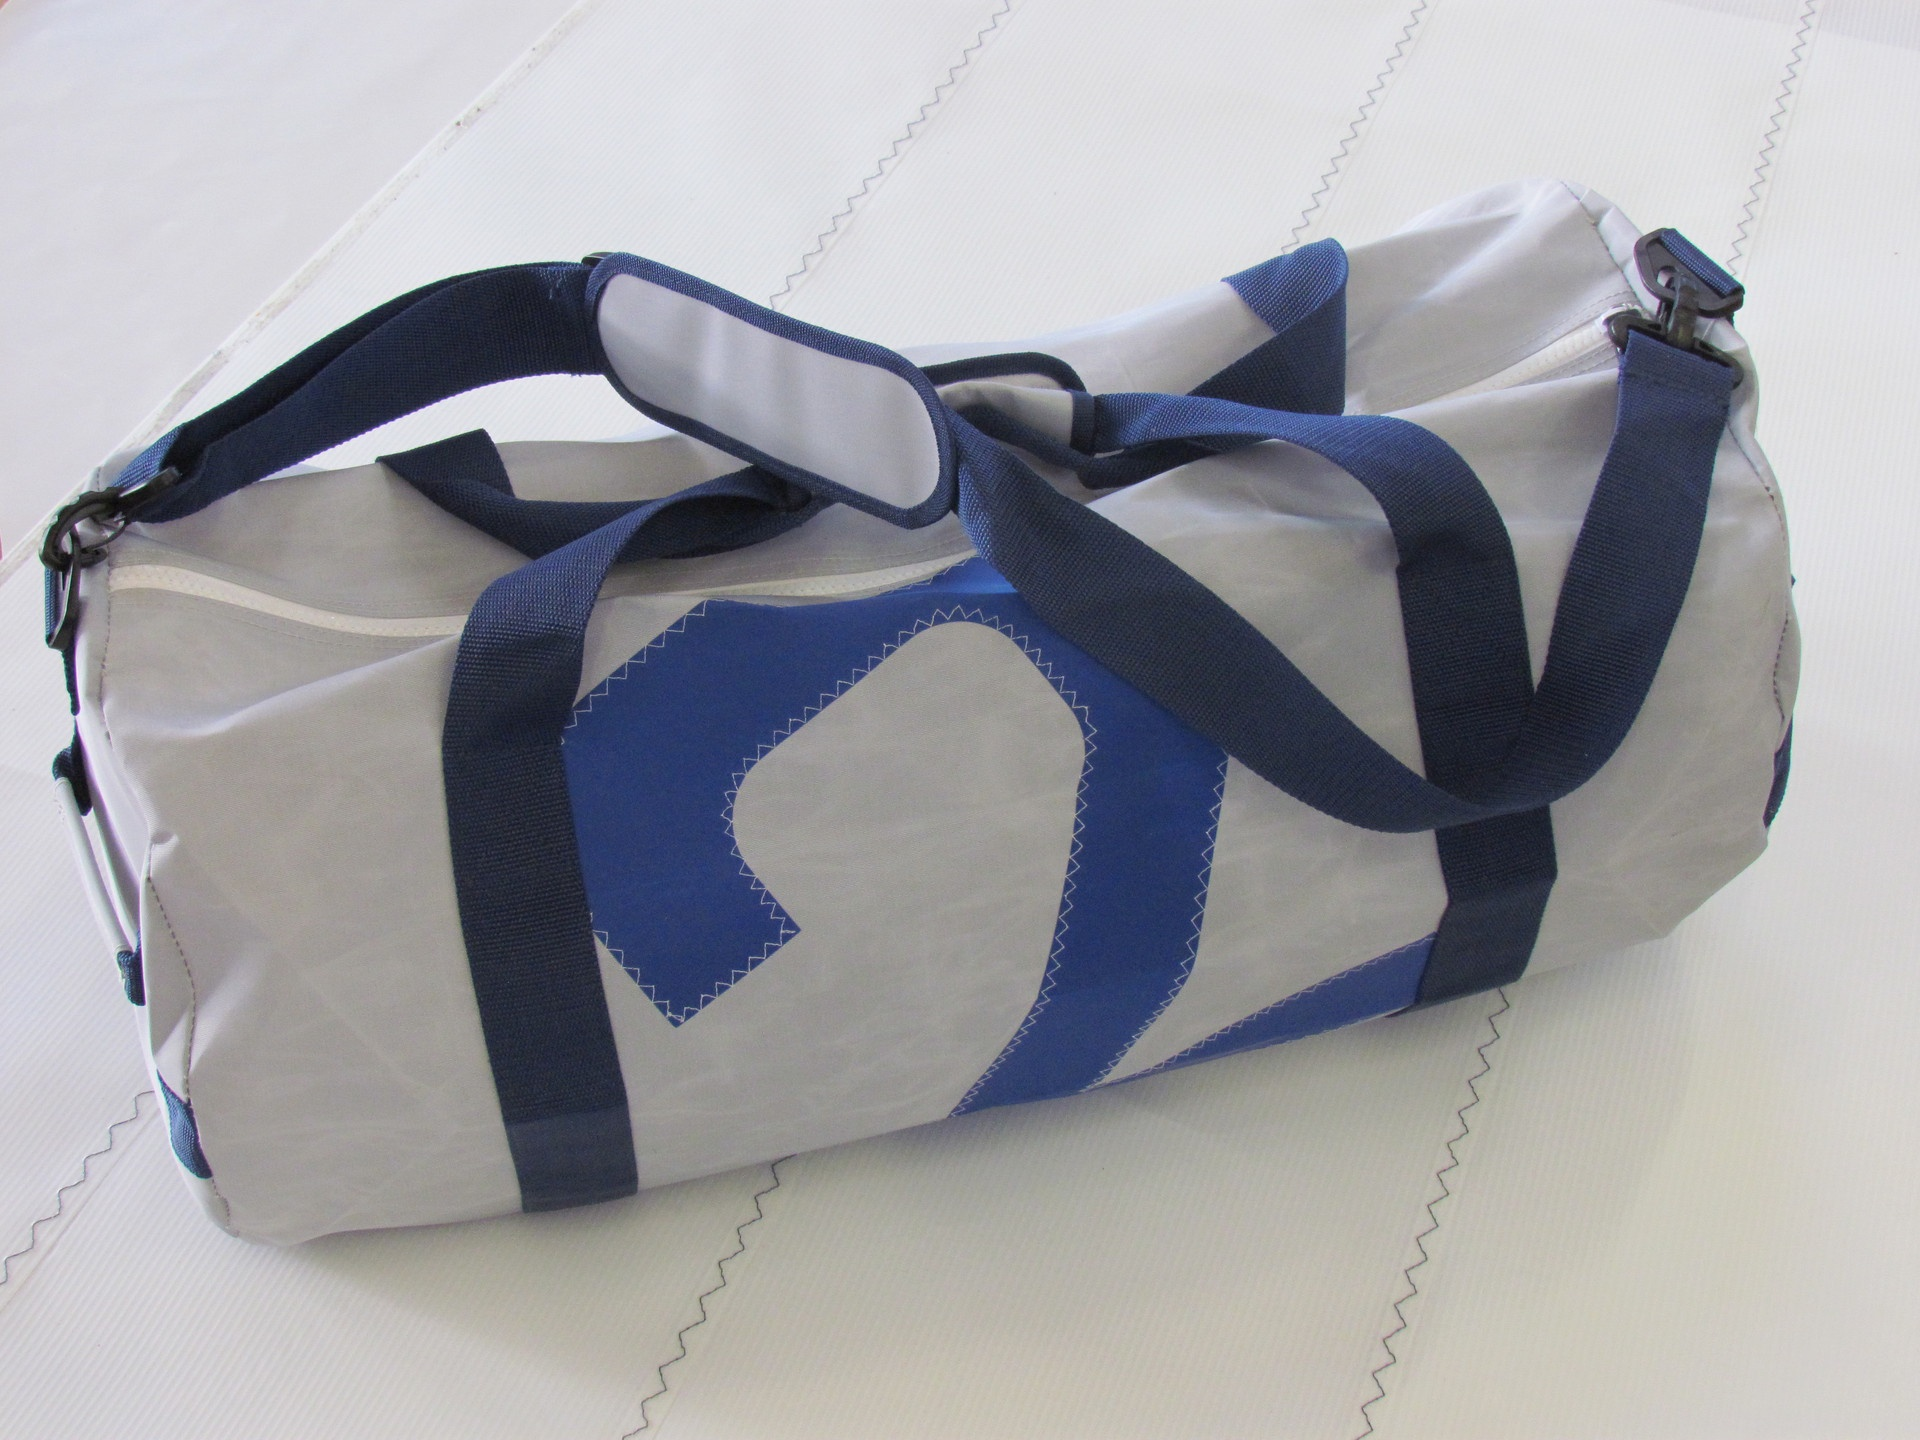 Large Sailcloth Gear Bag